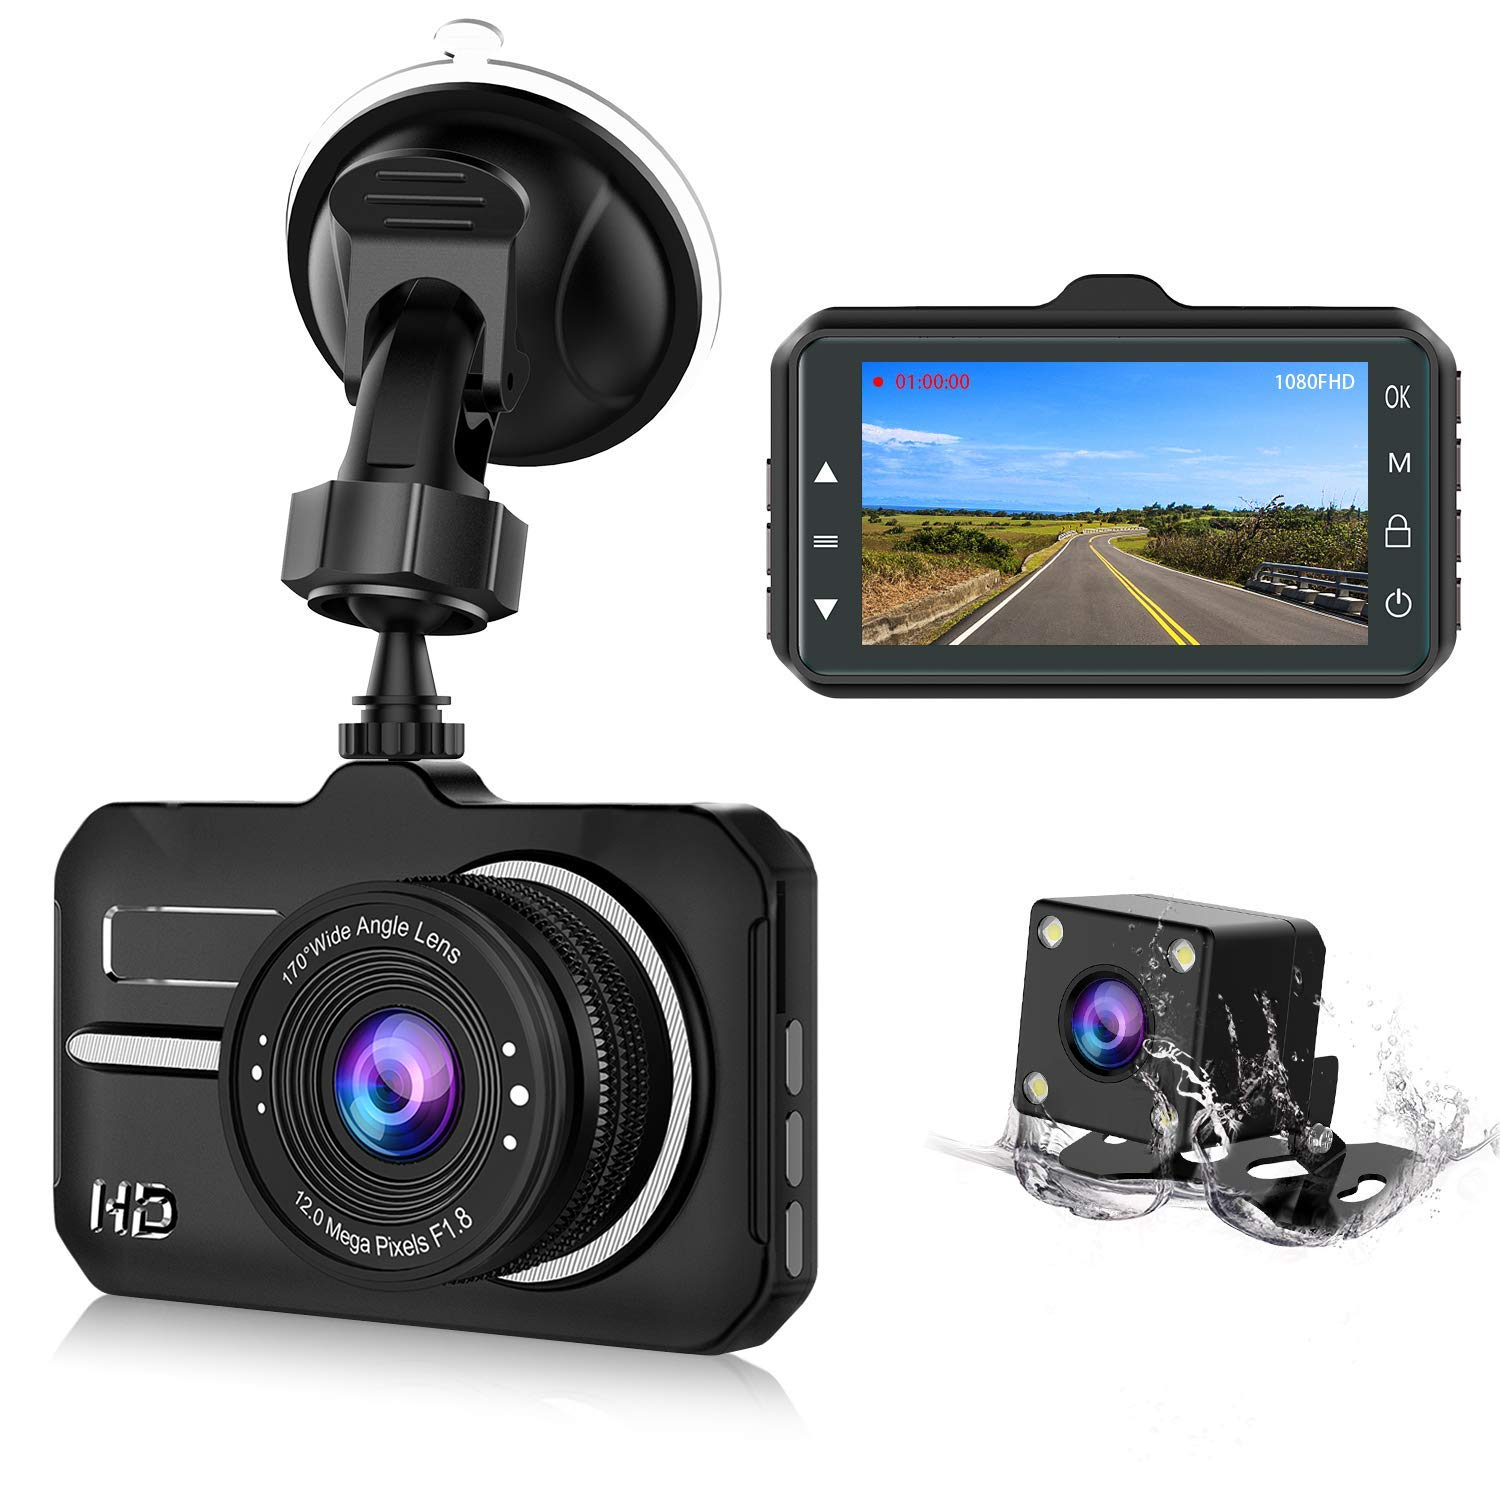 CHORTAU 【2019 New Version】 Dash Cam FHD 1080P 3 Inch 170° Wide Angle for £39.94